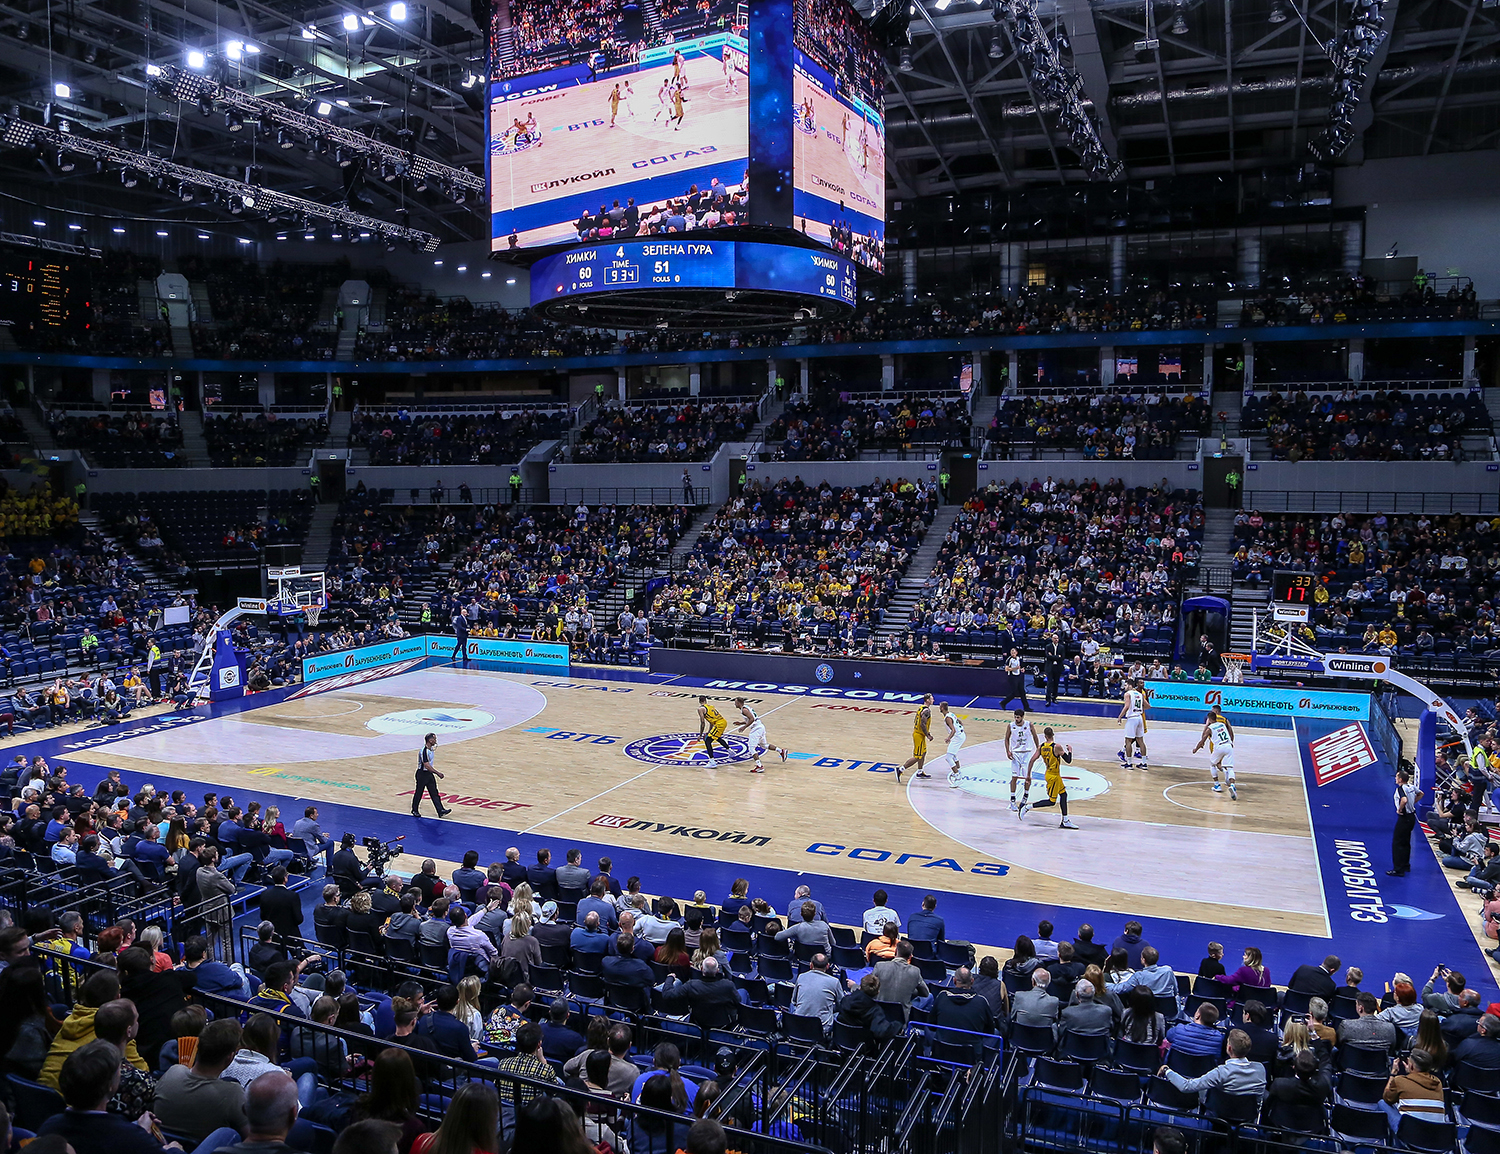 Show takes place on VTB-Arena, and Khimki gets a tough win. New season starts